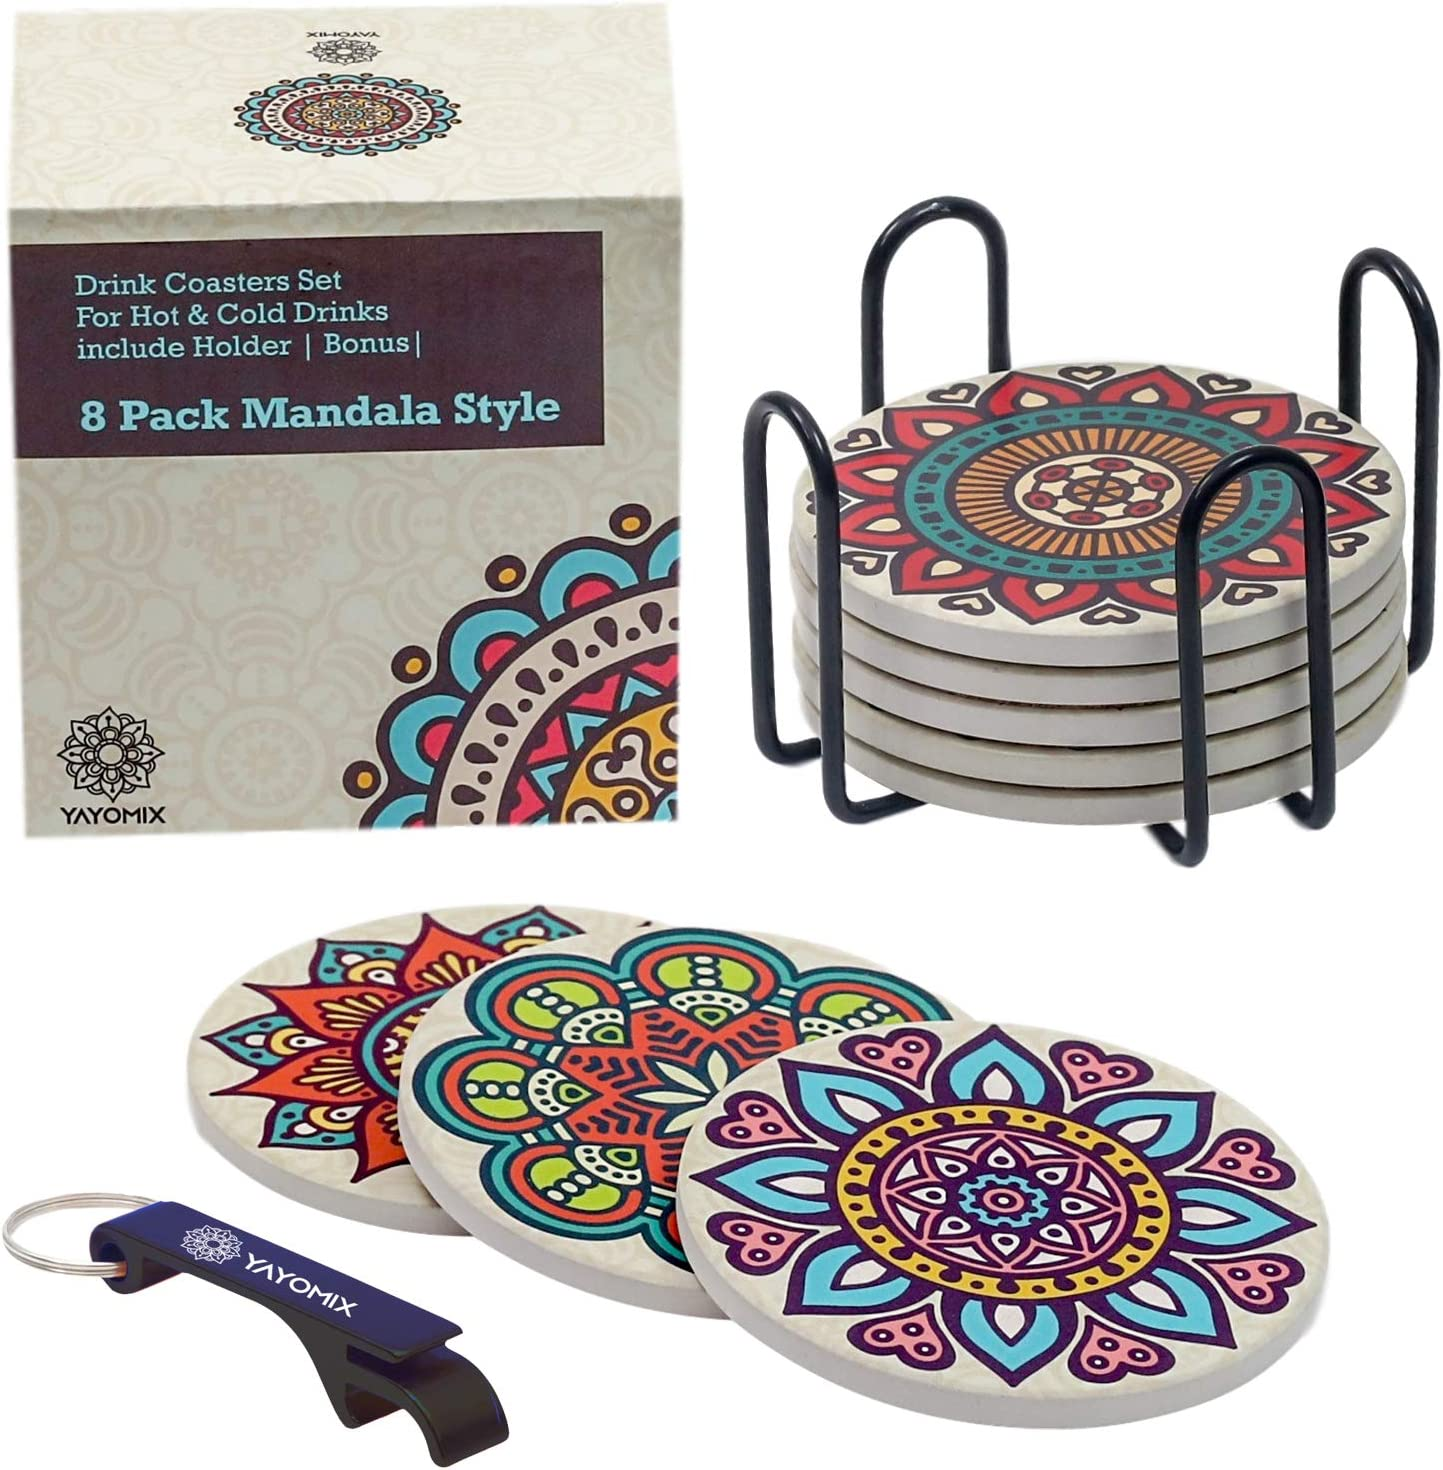 8 Absorbent Stone Coasters with Colorful Mandala Design and Elegant Black Metal Holder to Protect your Furniture - For Hot or Cold Beverages